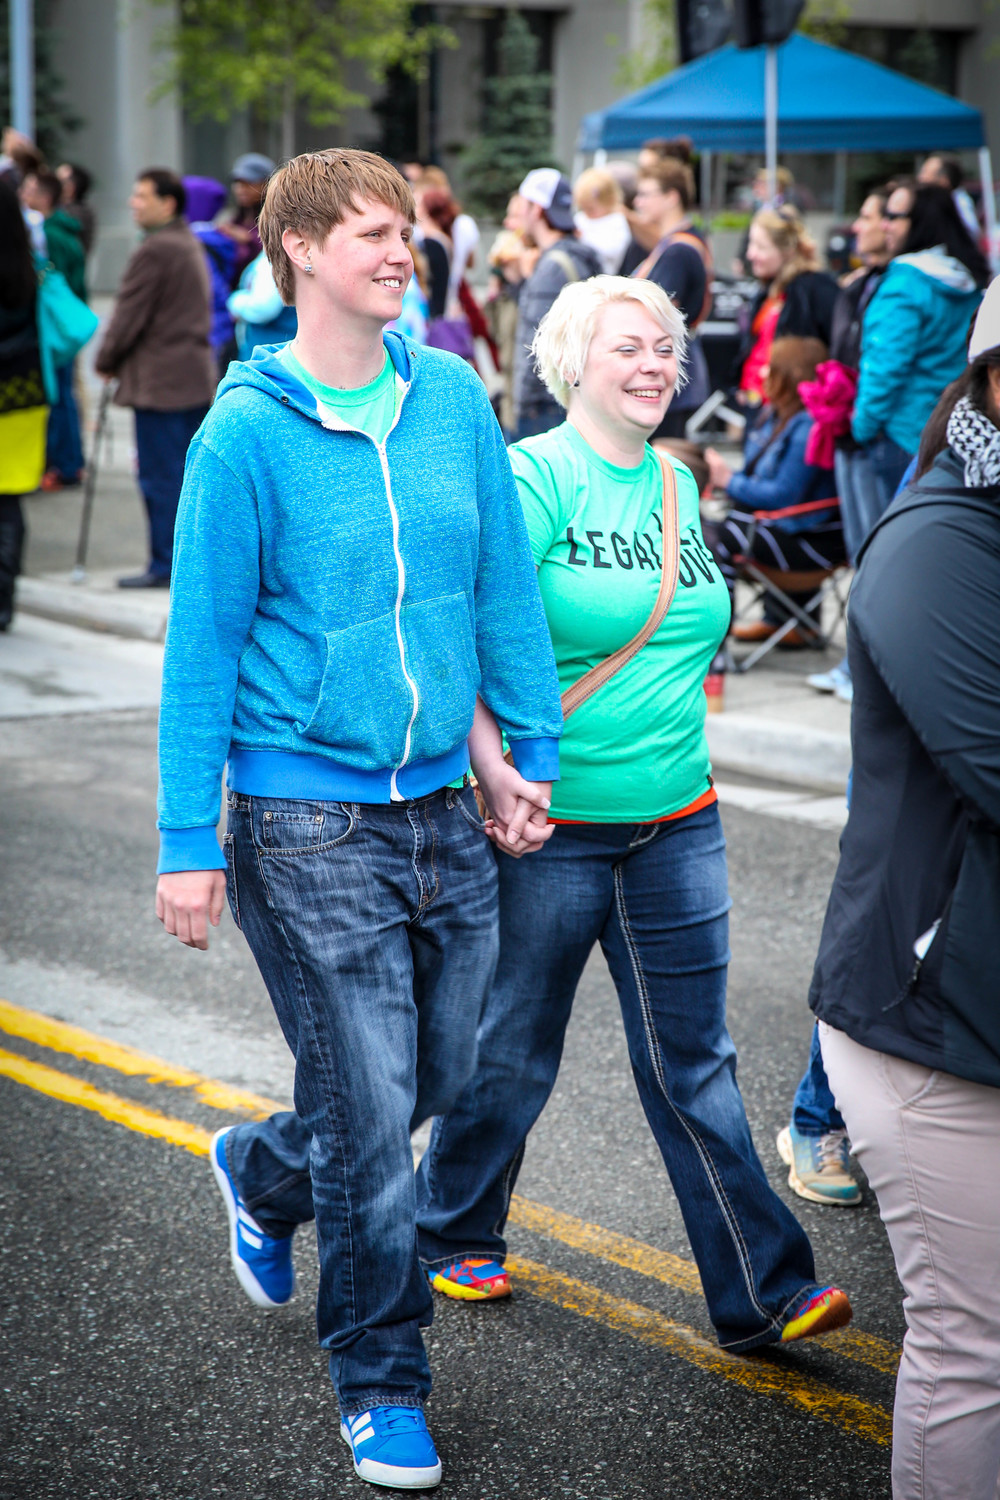 Courtney Lamb & Stephanie Pearsons marched in this year's Pride Parade. They were married in Anchorage in October, following a lawsuit with the state over marriage equality.